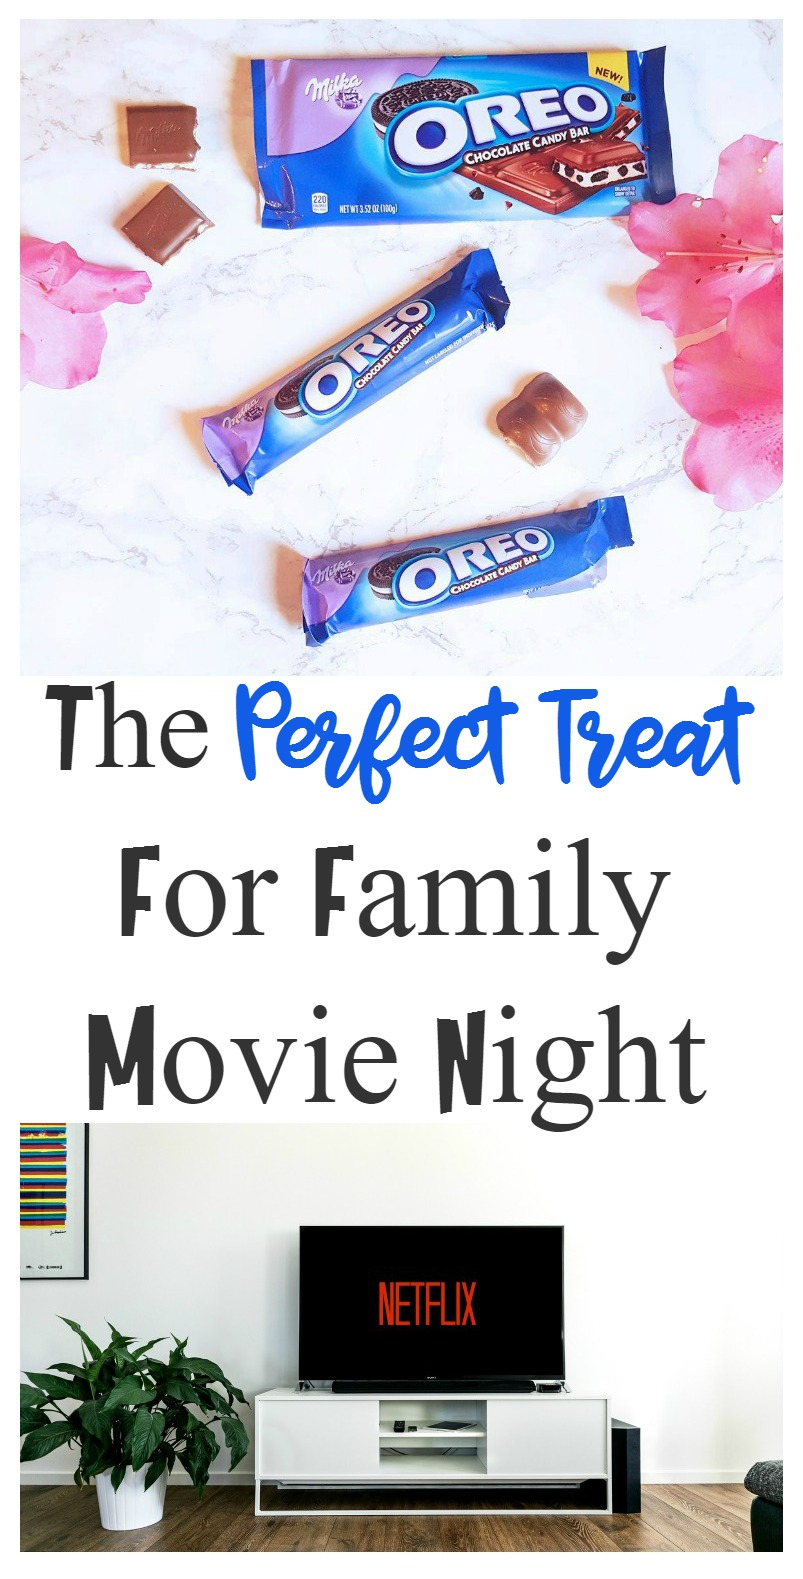 The Perfect Treat For Family Movie Night + Giveaway